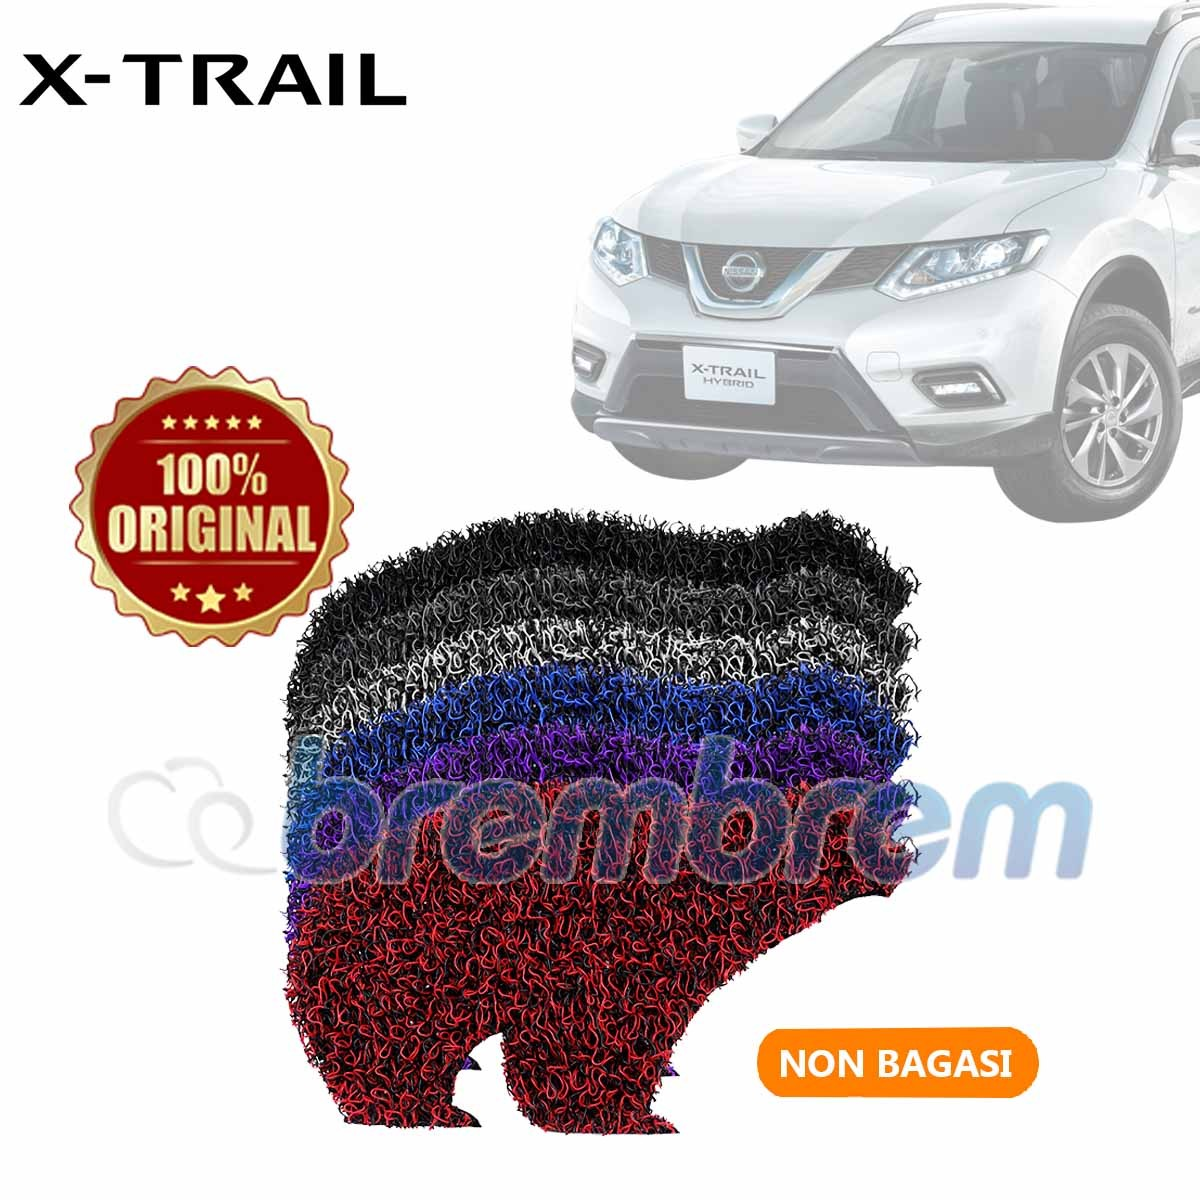 KARPET FIRST CLASS + BAGASI NISSAN ALL NEW XTRAIL